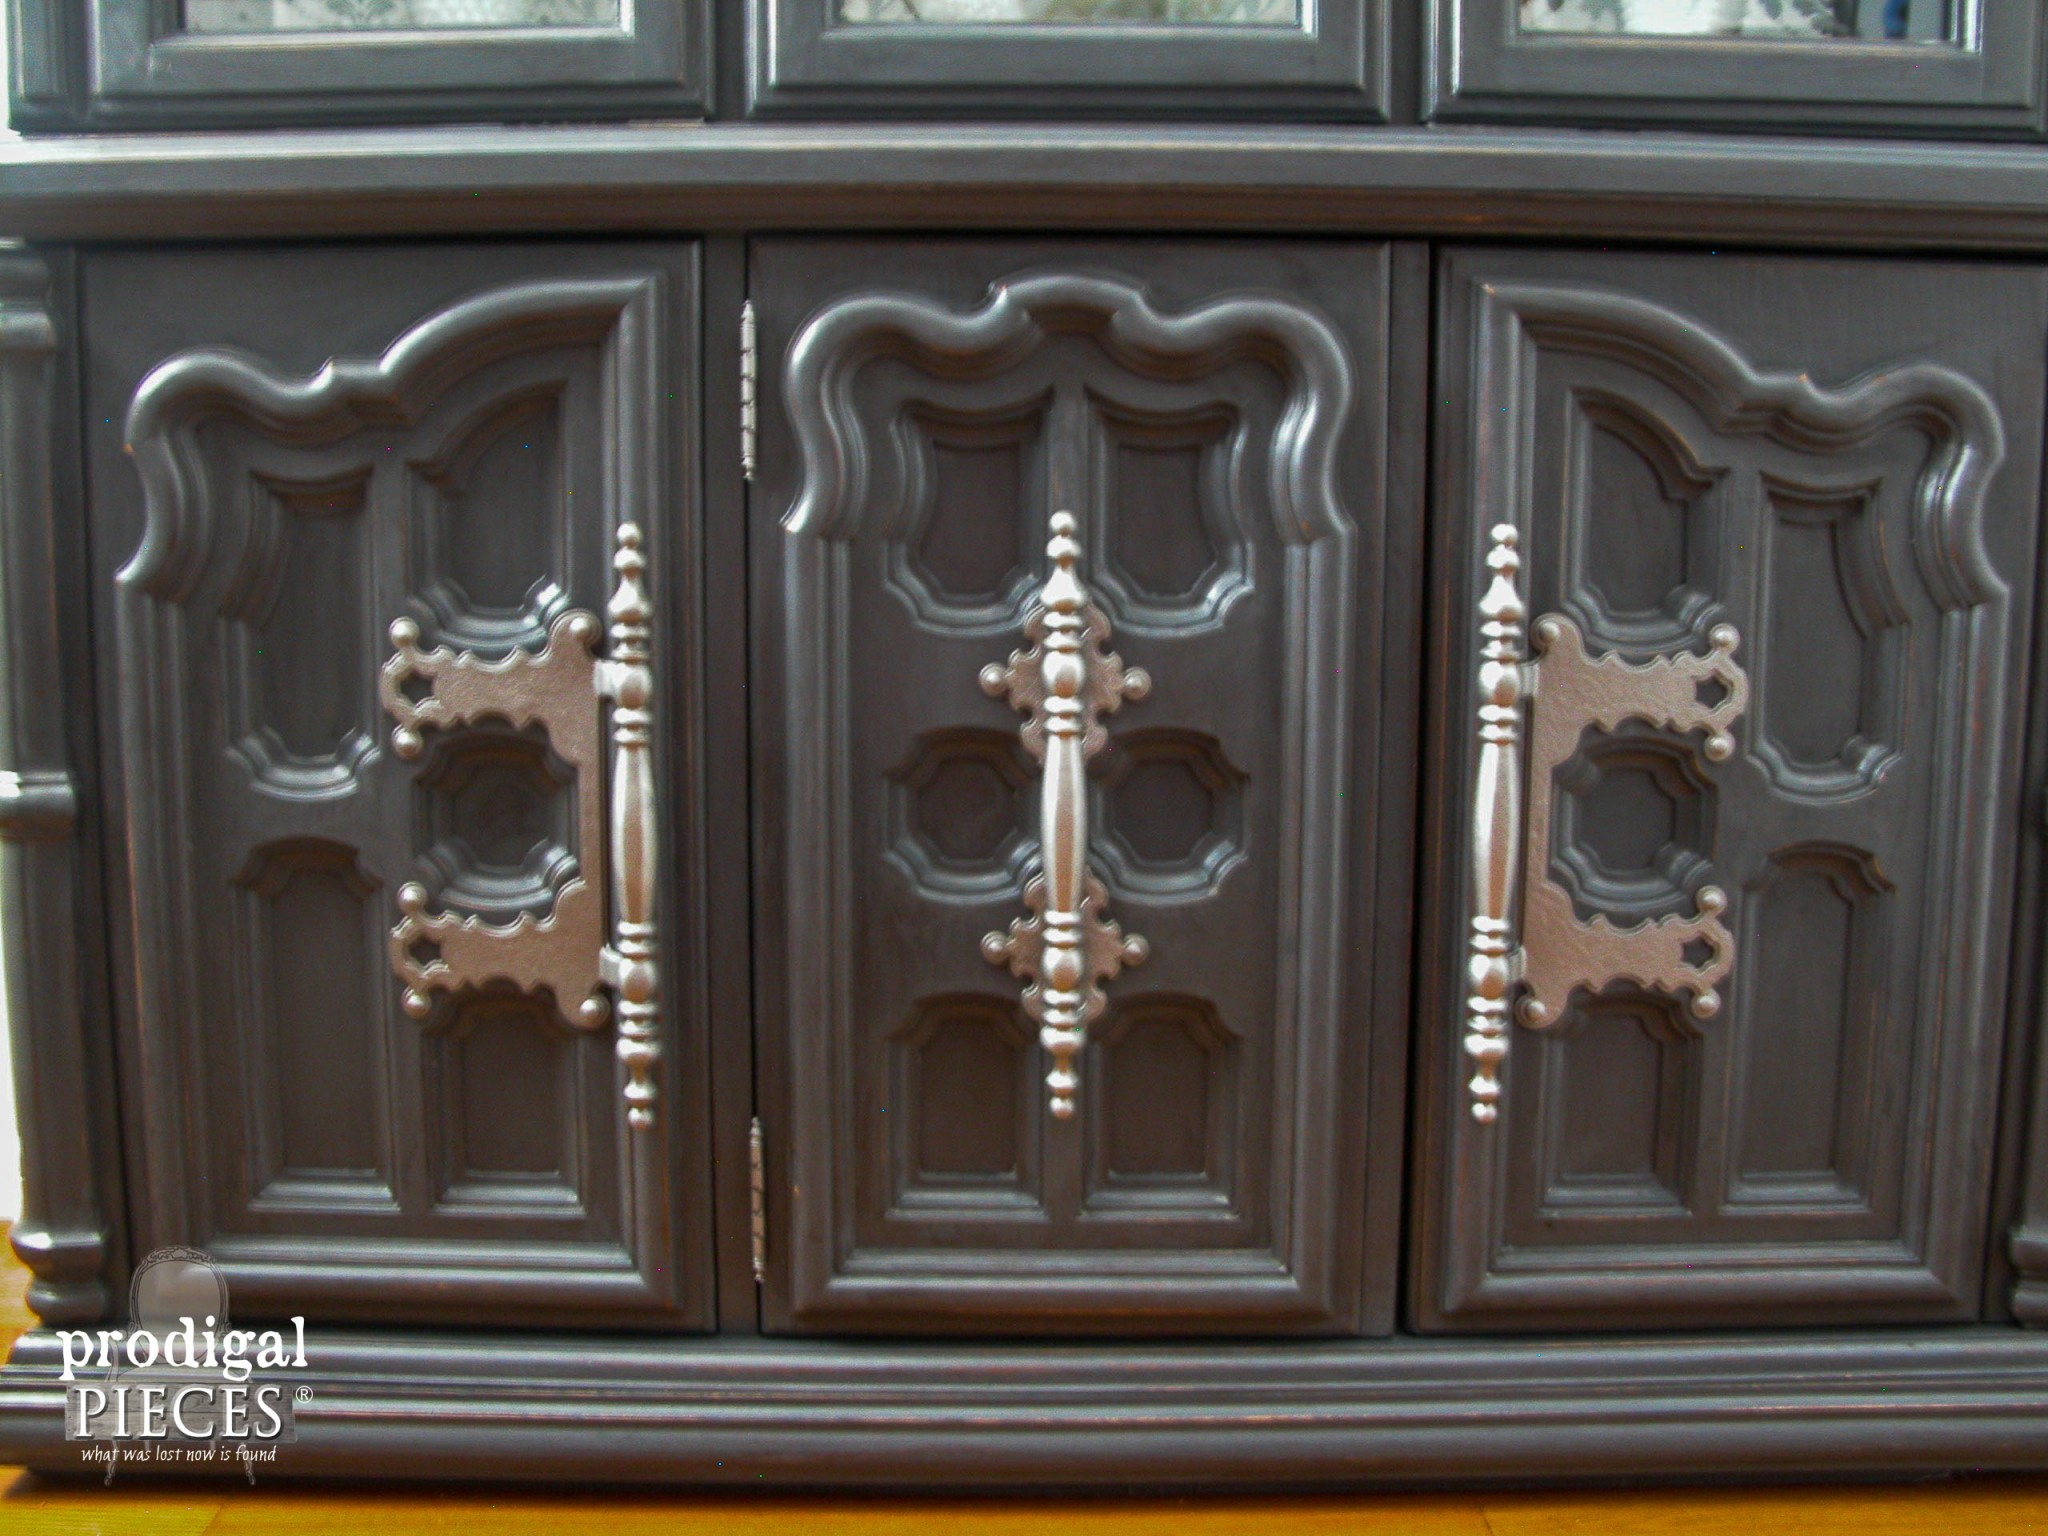 Ornate Woodwork on Wallpapered China Cabinet by Prodigal Pieces | www.prodigalpieces.com